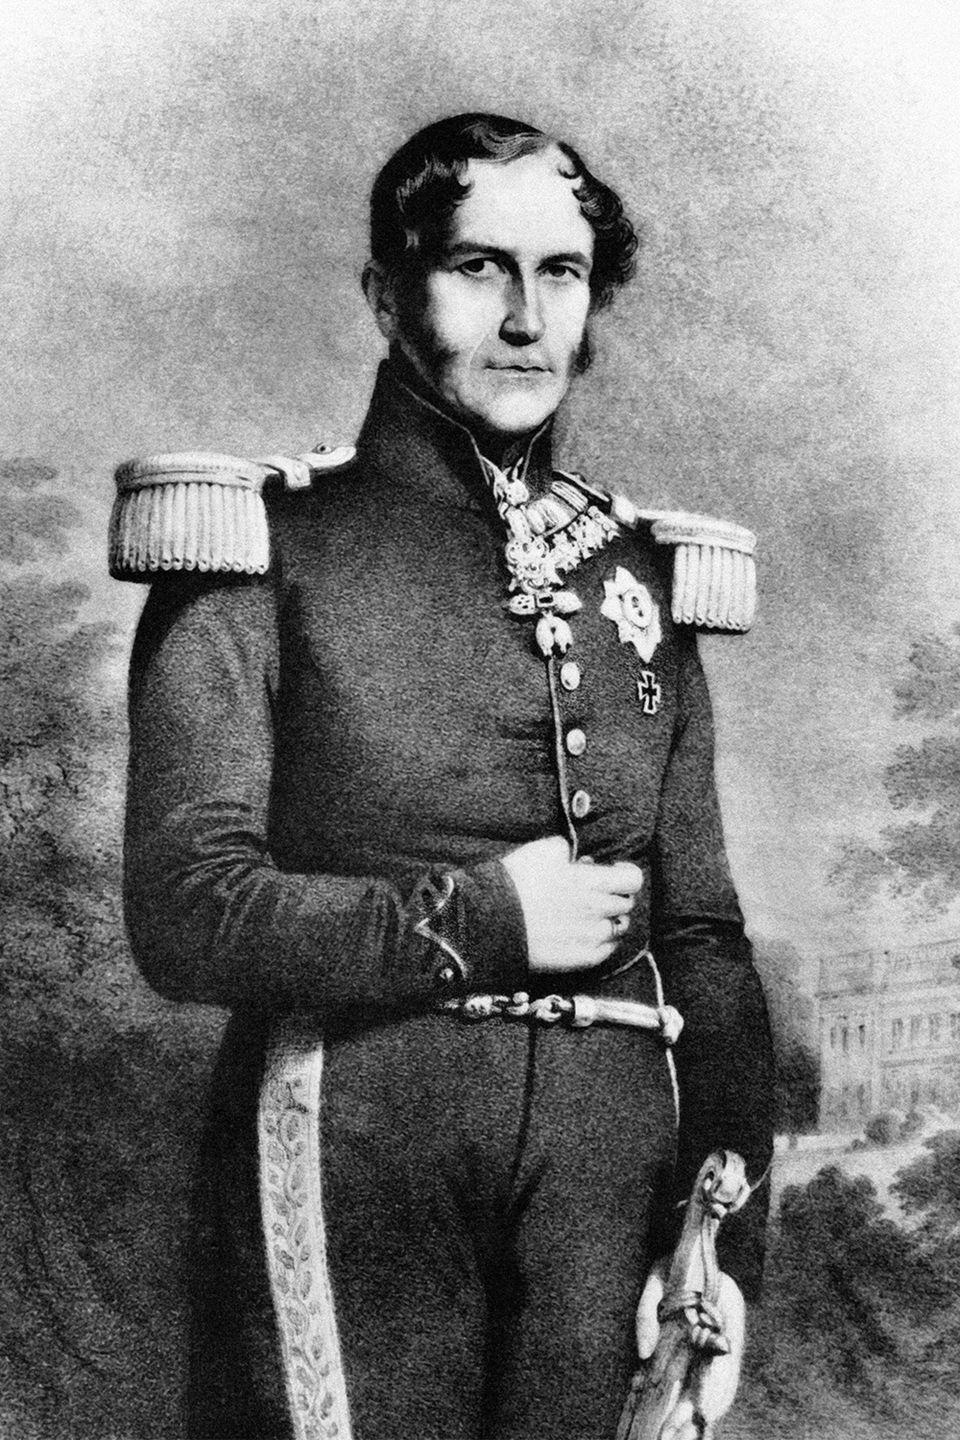 "<p>While it was only a rumor that King Leopold I was Prince Albert's dad, it was confirmed that the king fathered two other children out of wedlock—George and Arthur. Leopold's mistress Arcadie Meyer gave birth to George in 1849 and Arthur just three years later, in 1852. Both sons were granted the title <a href=""https://en.wikipedia.org/wiki/Leopold_I_of_Belgium"" rel=""nofollow noopener"" target=""_blank"" data-ylk=""slk:Freiherr von Eppinghoven"" class=""link rapid-noclick-resp"">Freiherr von Eppinghoven</a> in 1862 by the king's nephew Ernest II, Duke of Saxe-Coburg and Gotha.</p>"